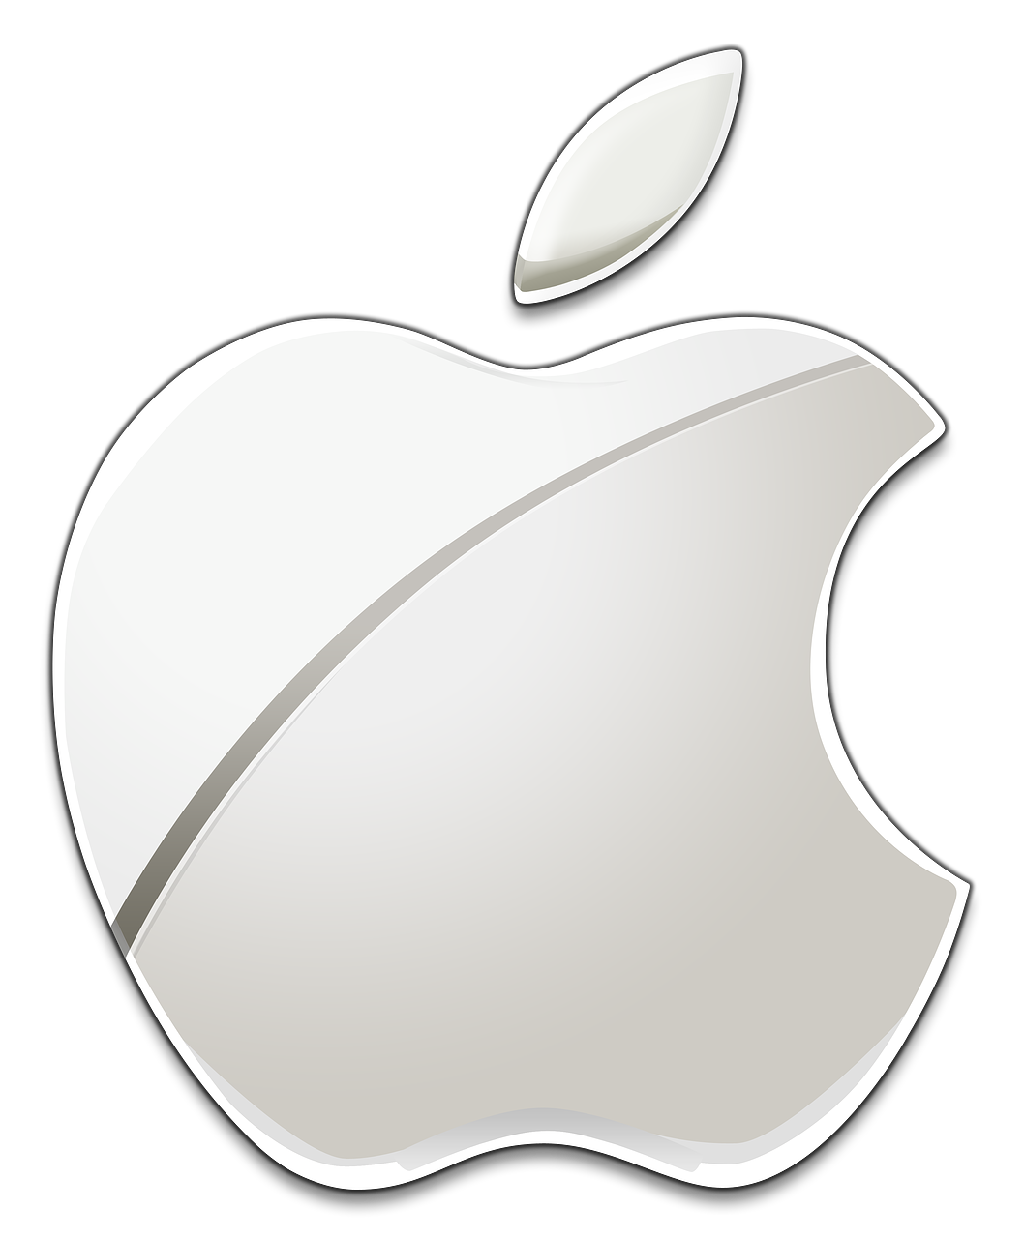 Apple inc logo Wallpaper